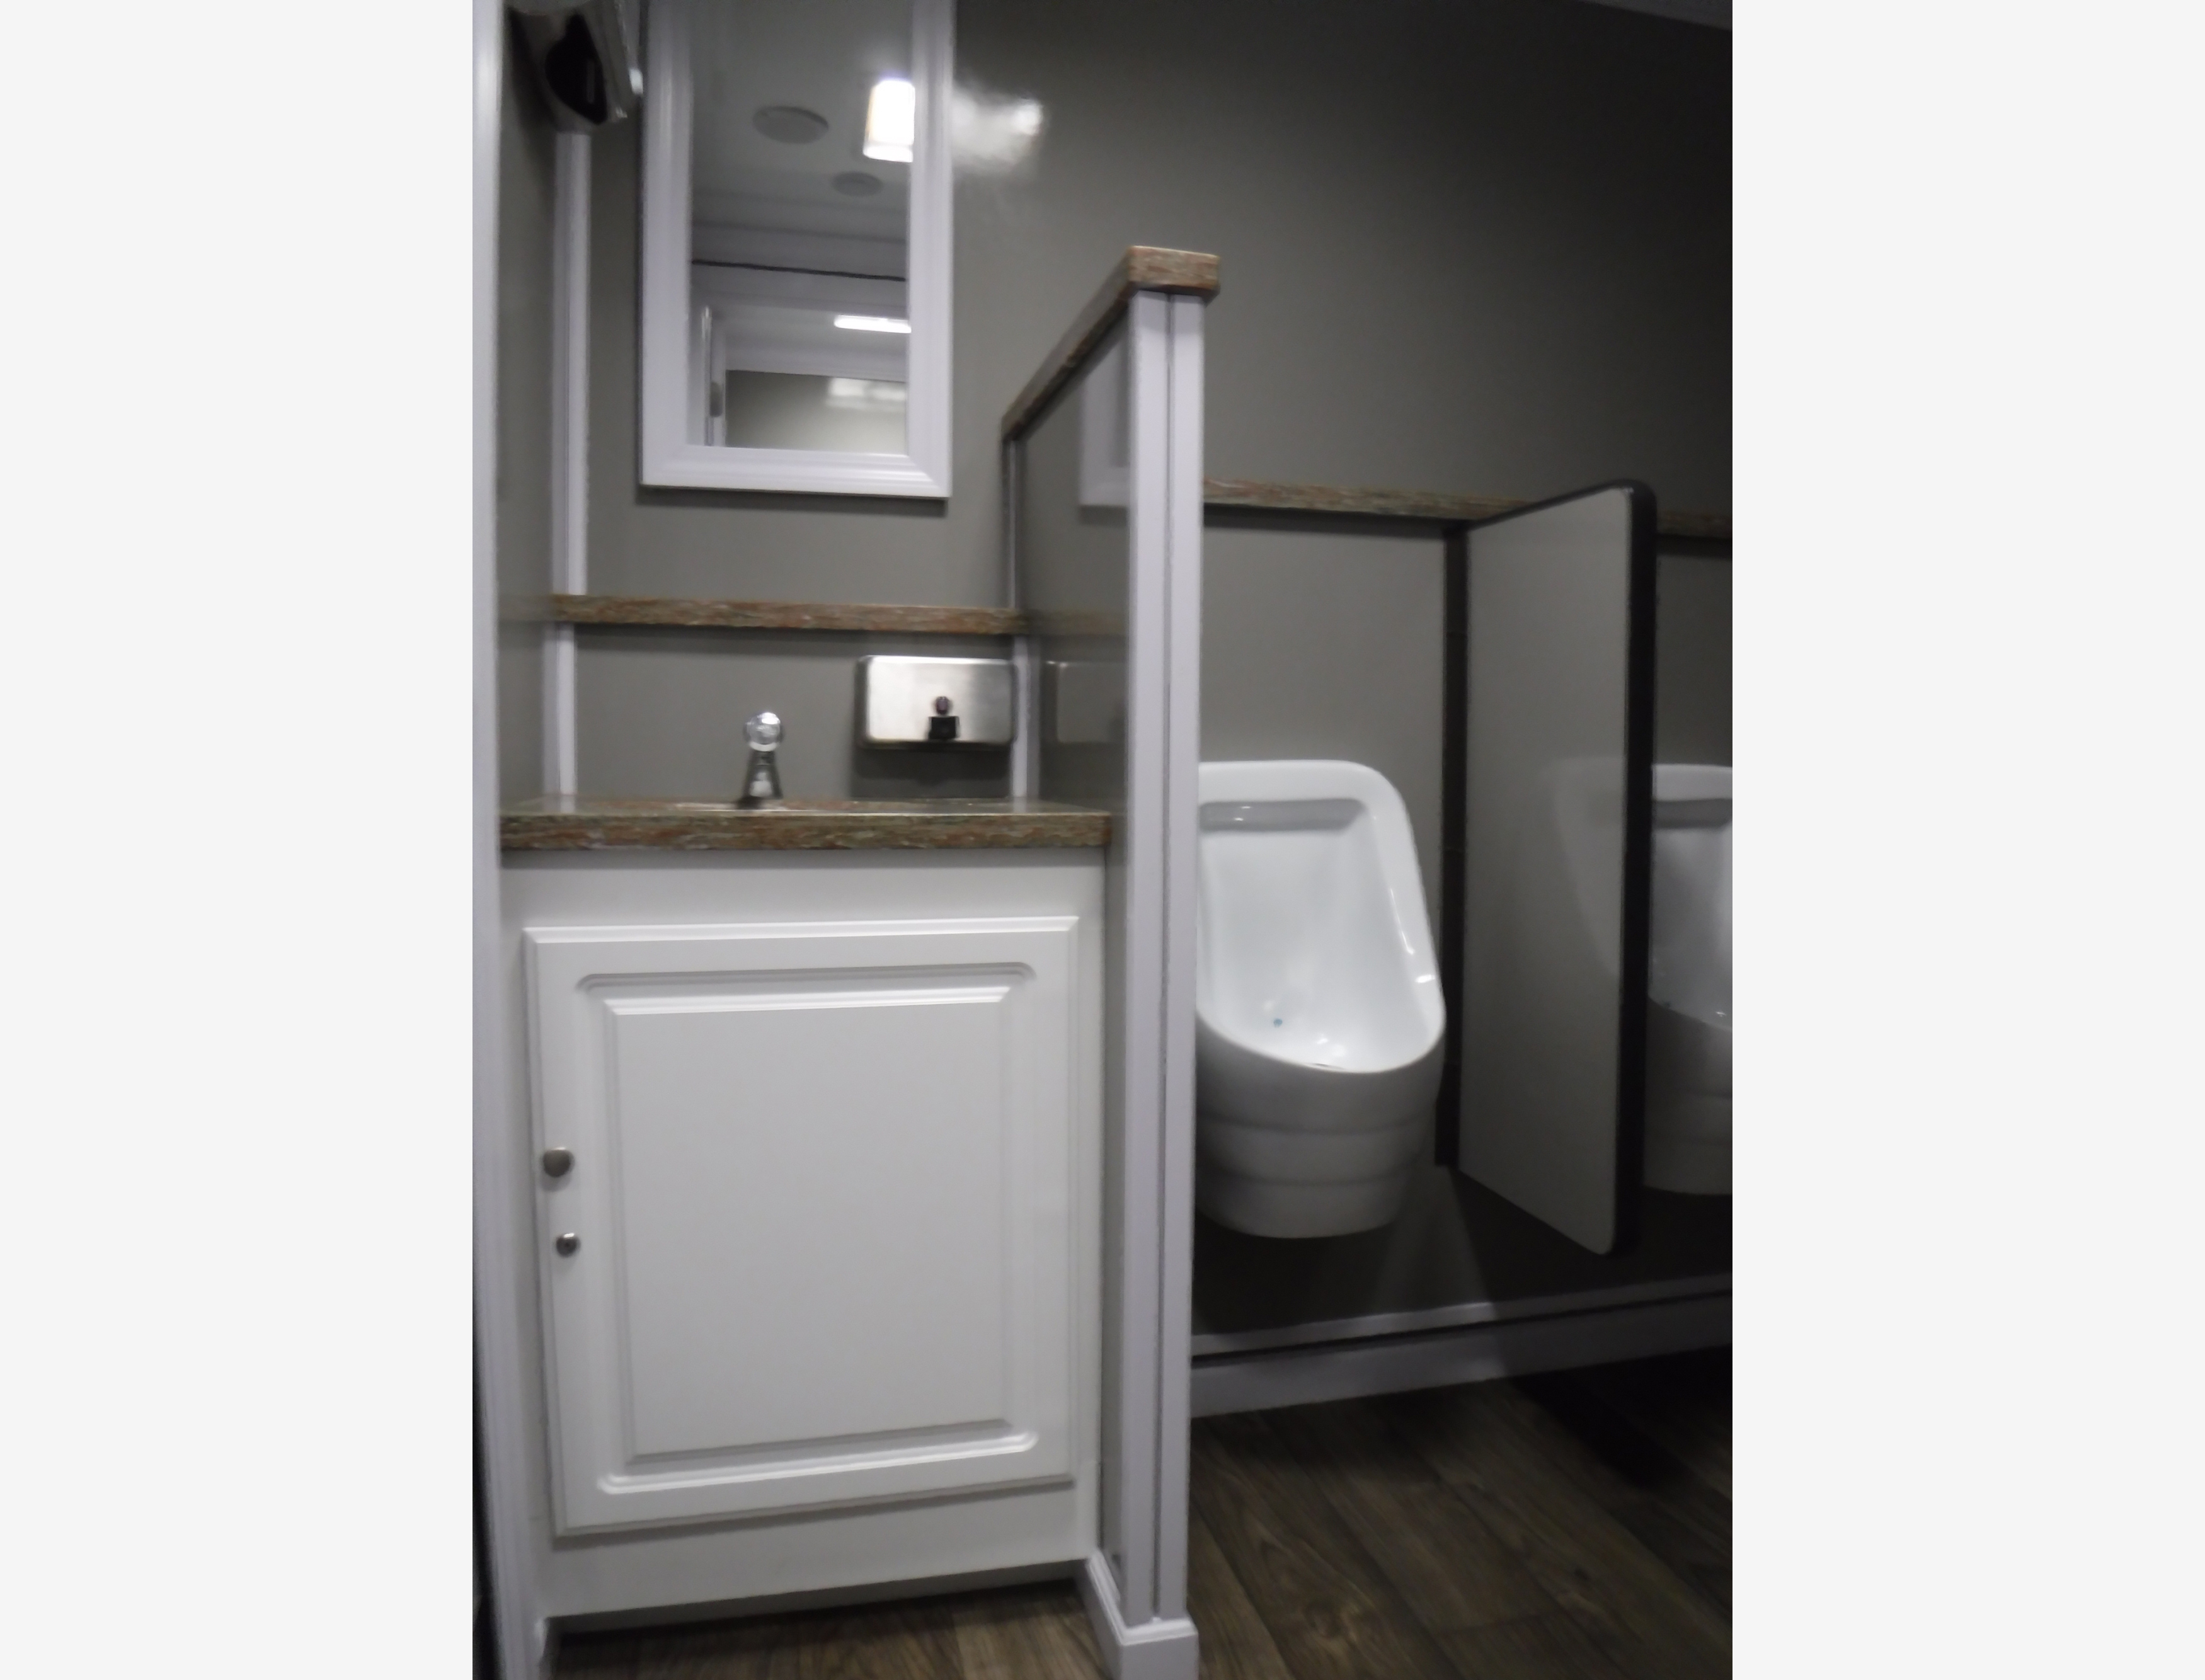 within station required psi vip toilets access the for with restroom a kennedy location of portable fitting is garden bathroom trailers to trailer standard hose commercial water opt service unit spigot